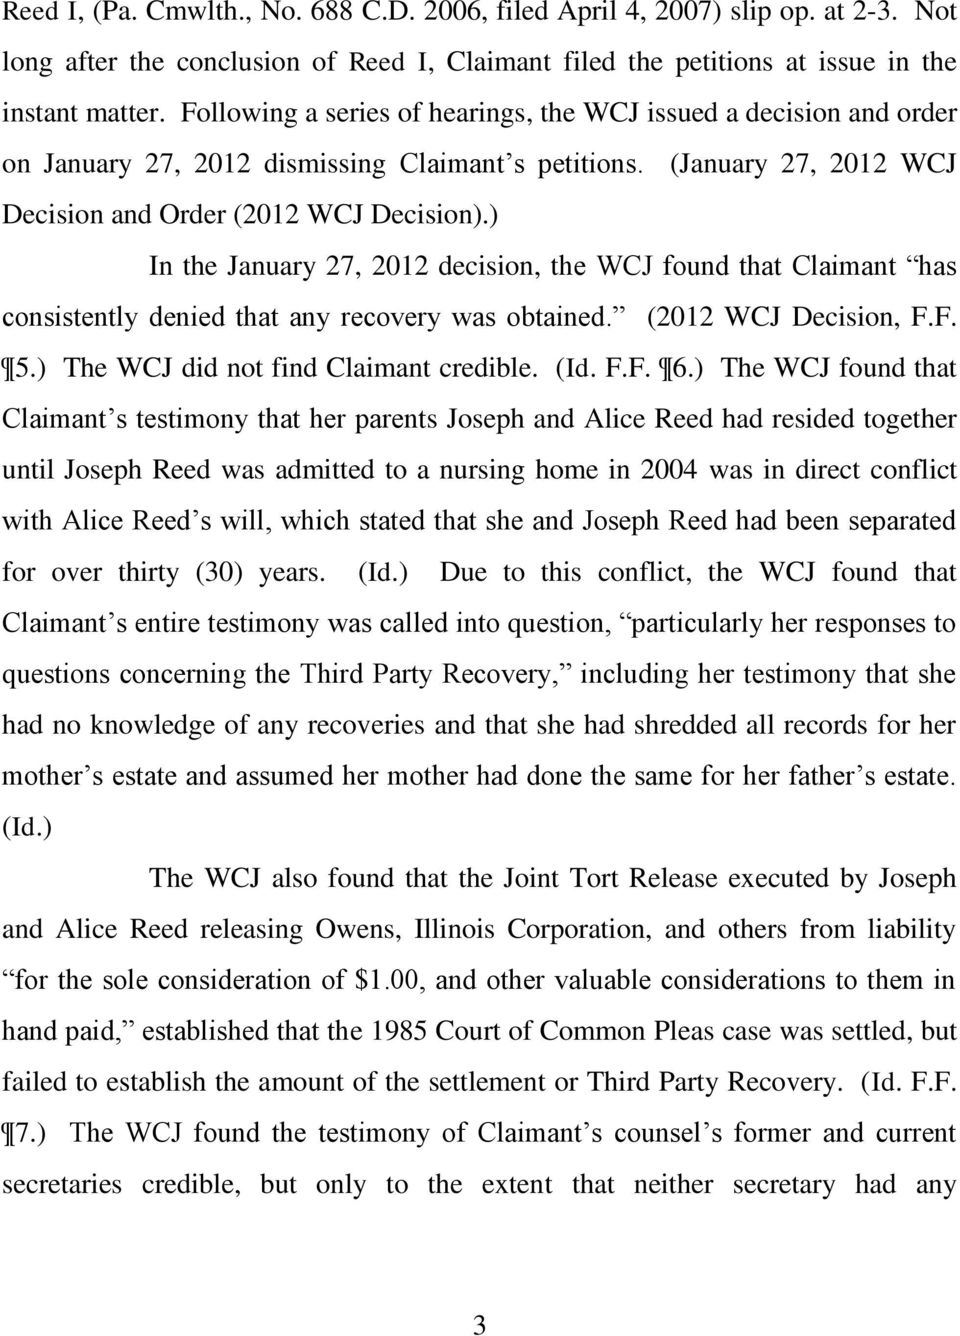 ) In the January 27, 2012 decision, the WCJ found that Claimant has consistently denied that any recovery was obtained. (2012 WCJ Decision, F.F. 5.) The WCJ did not find Claimant credible. (Id. F.F. 6.